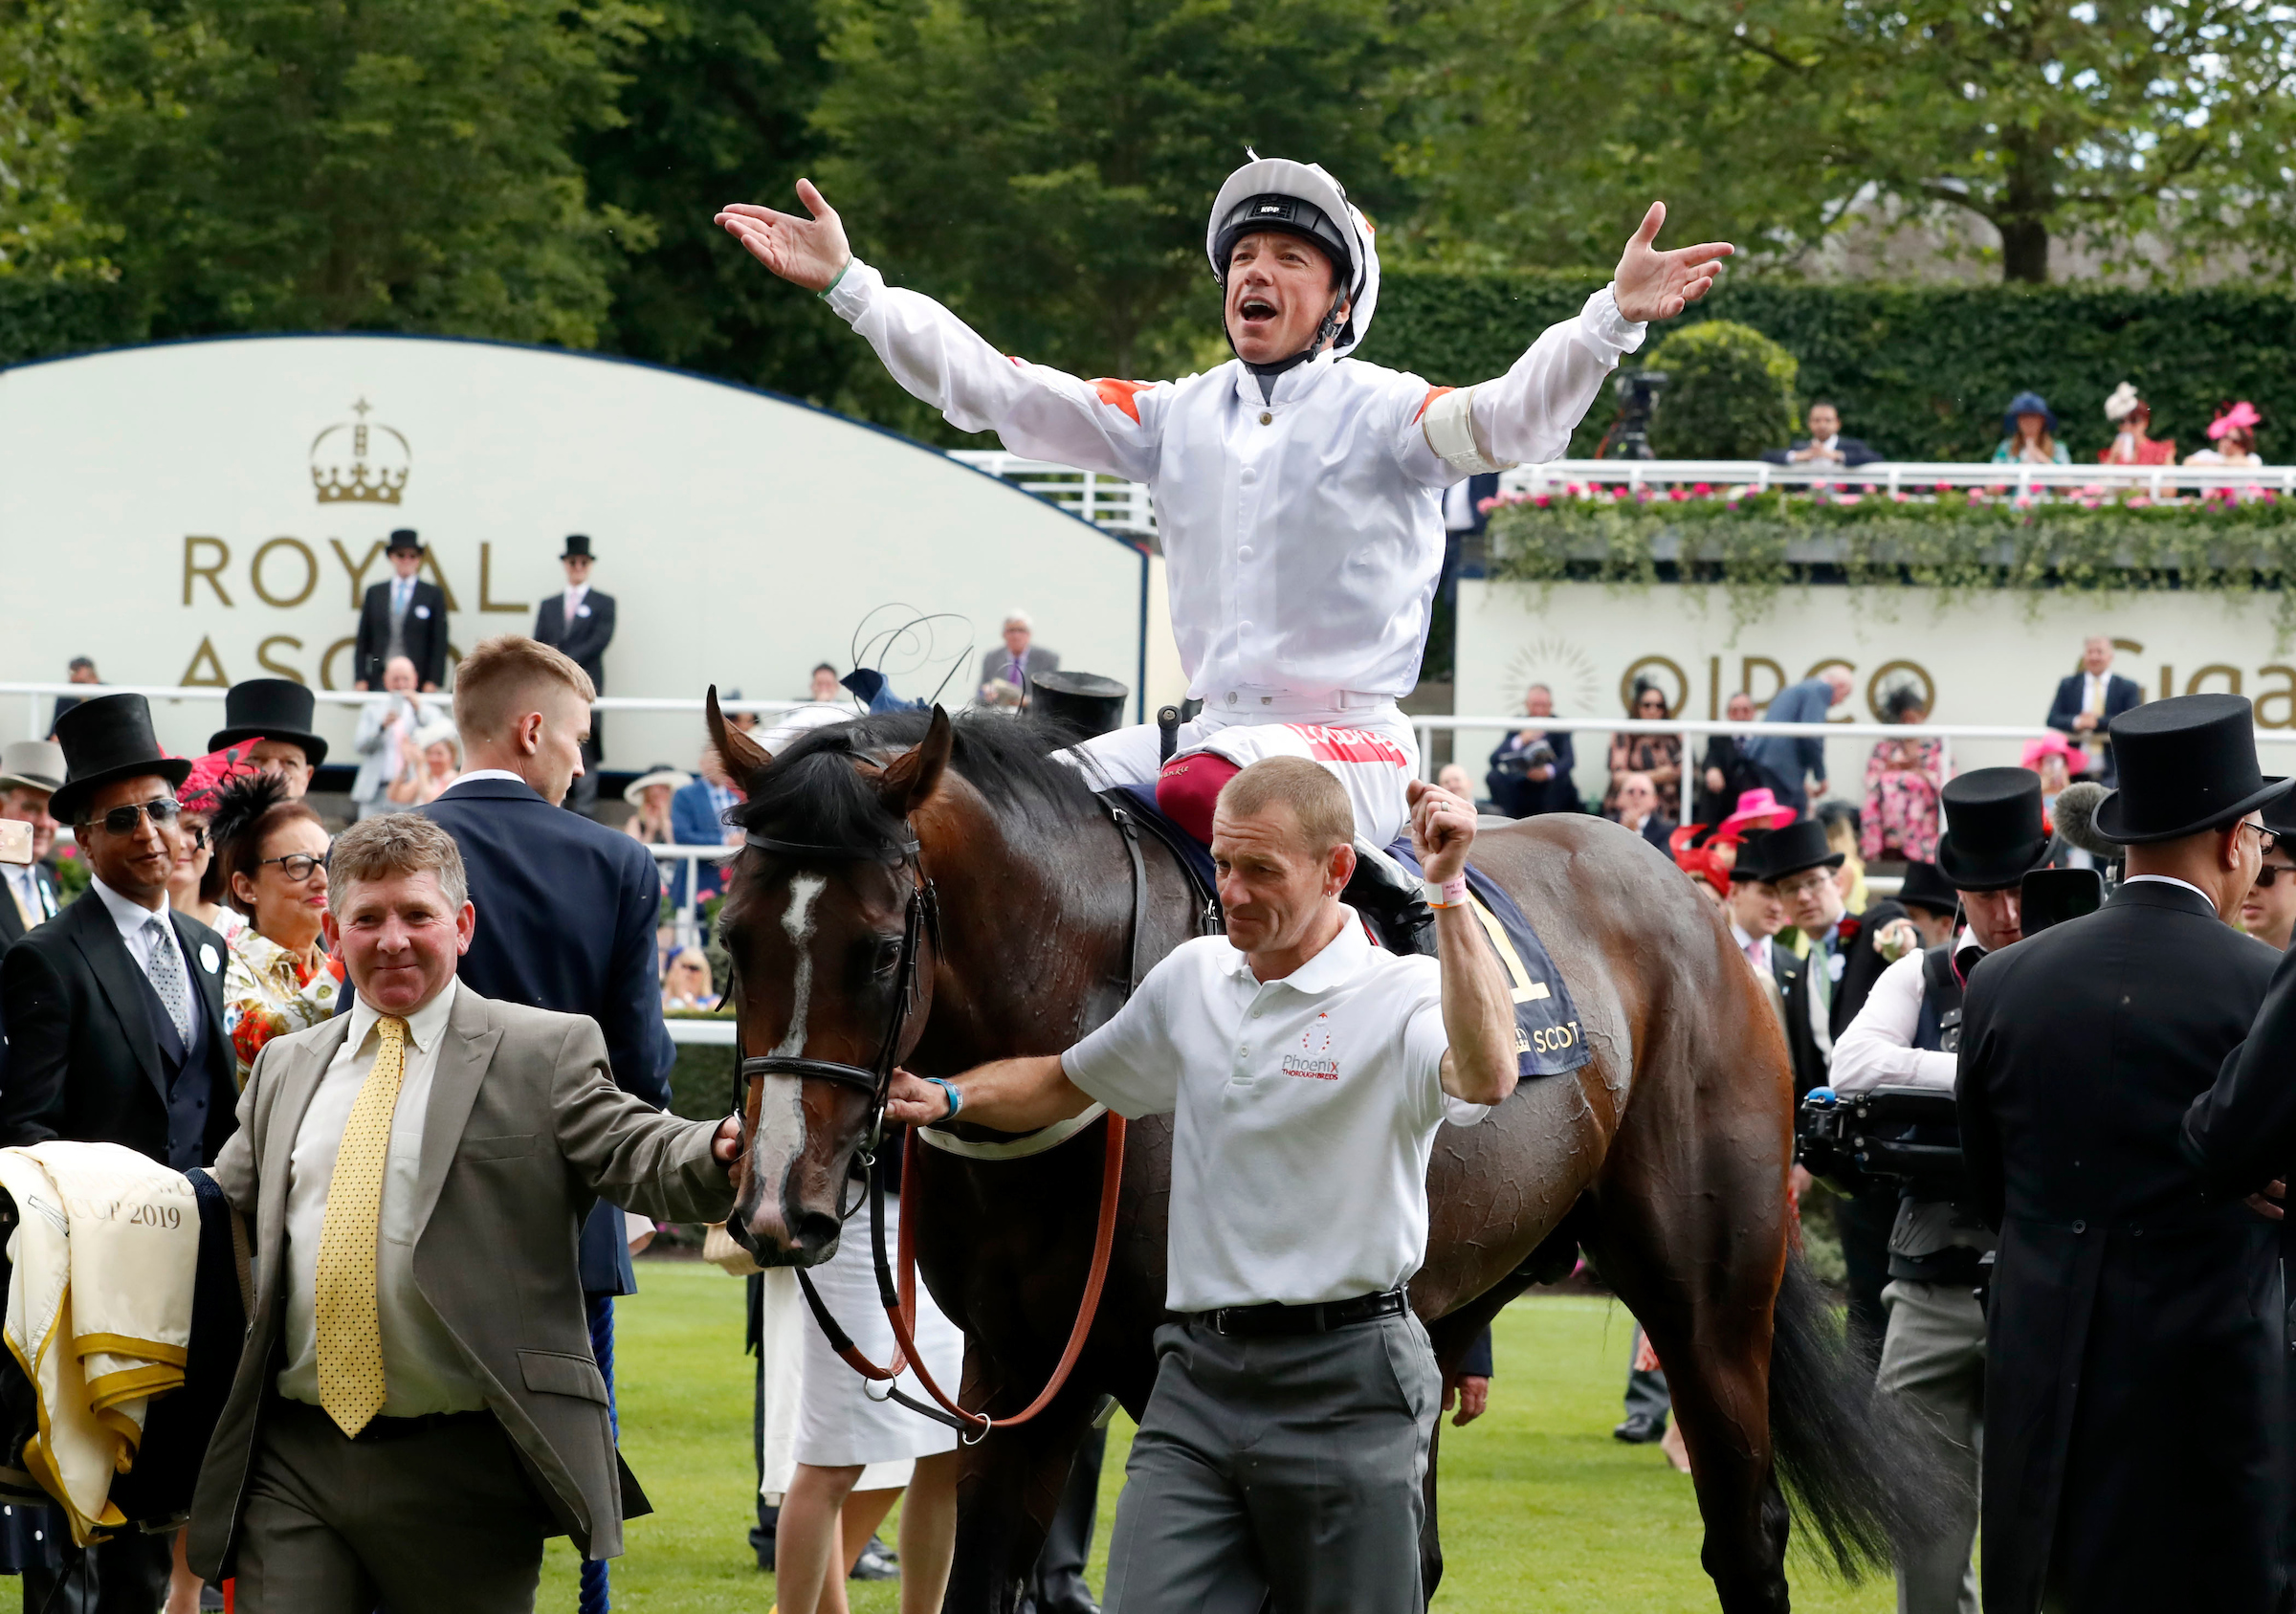 Advertise and Dettori return after winning at Royal Ascot (Focusonracing)